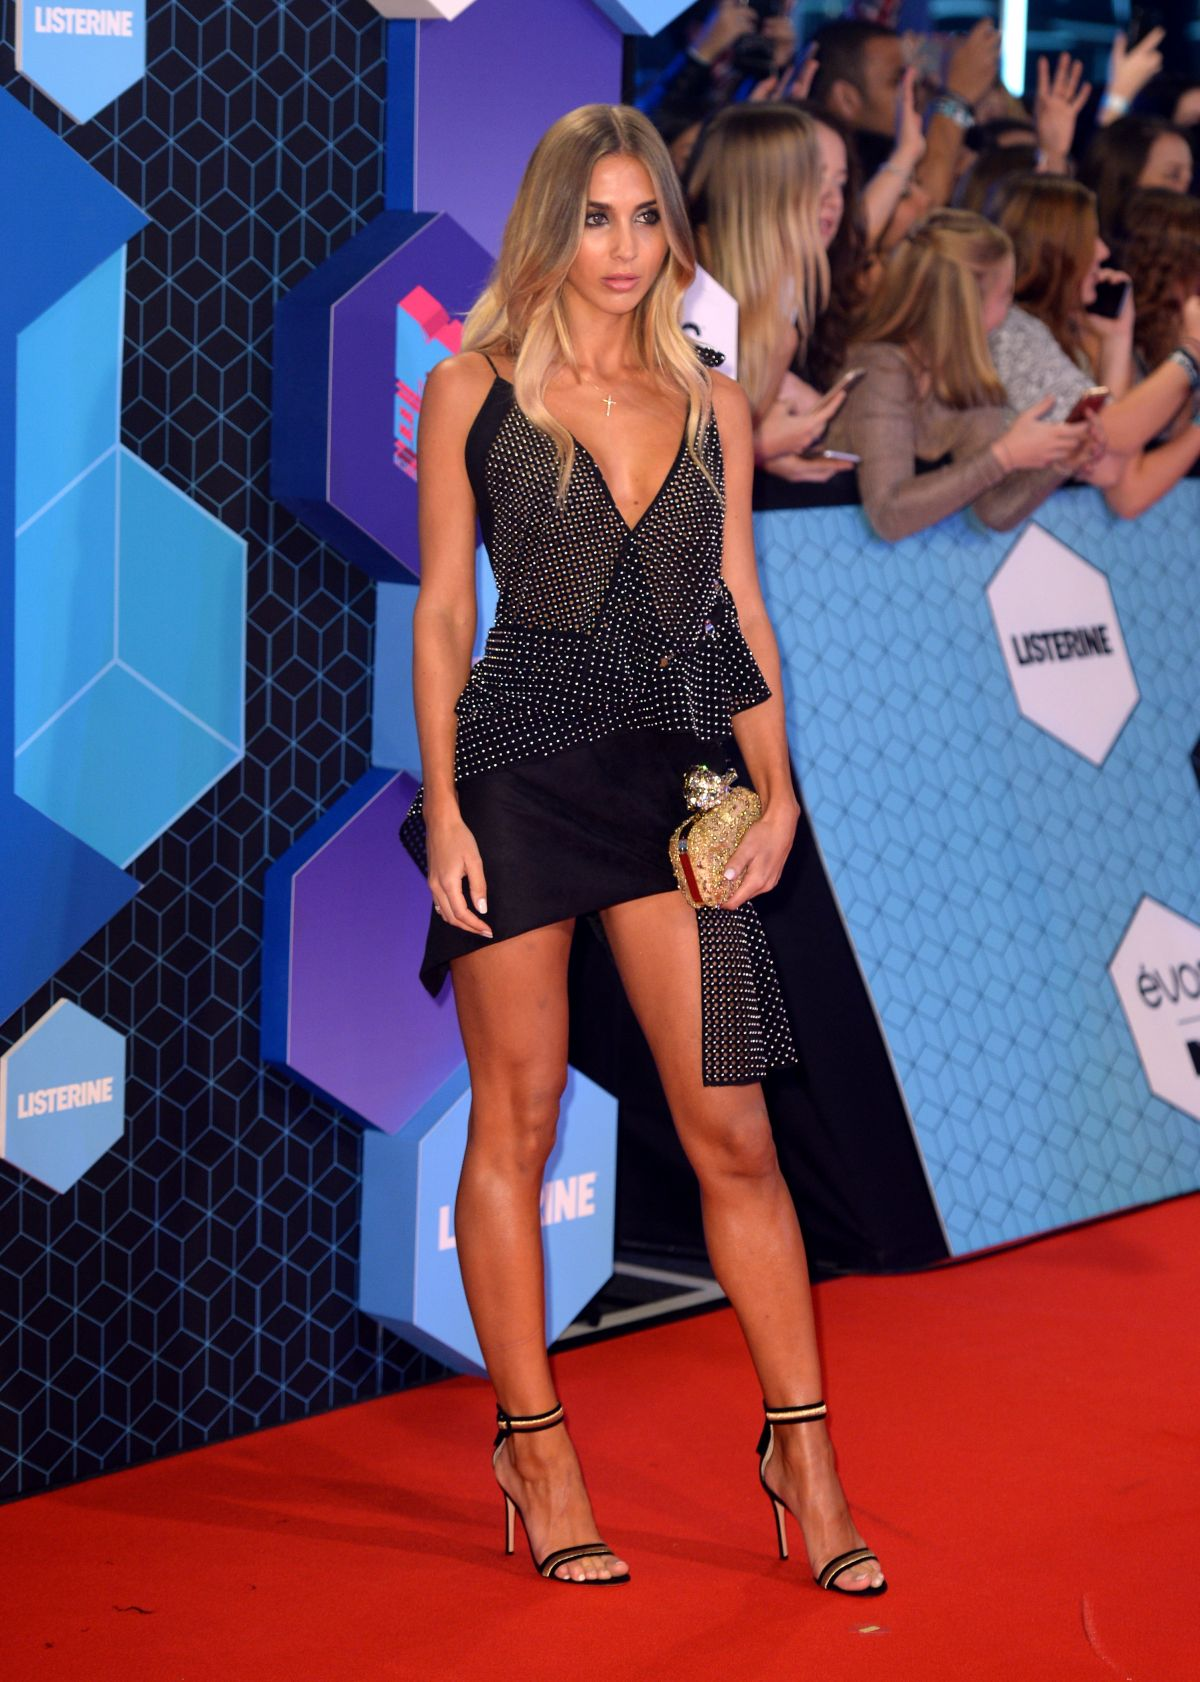 ANN KATHRIN BROMMEL at MTV Europe Music Awards 2016 in Rotterdam 11/06/2016